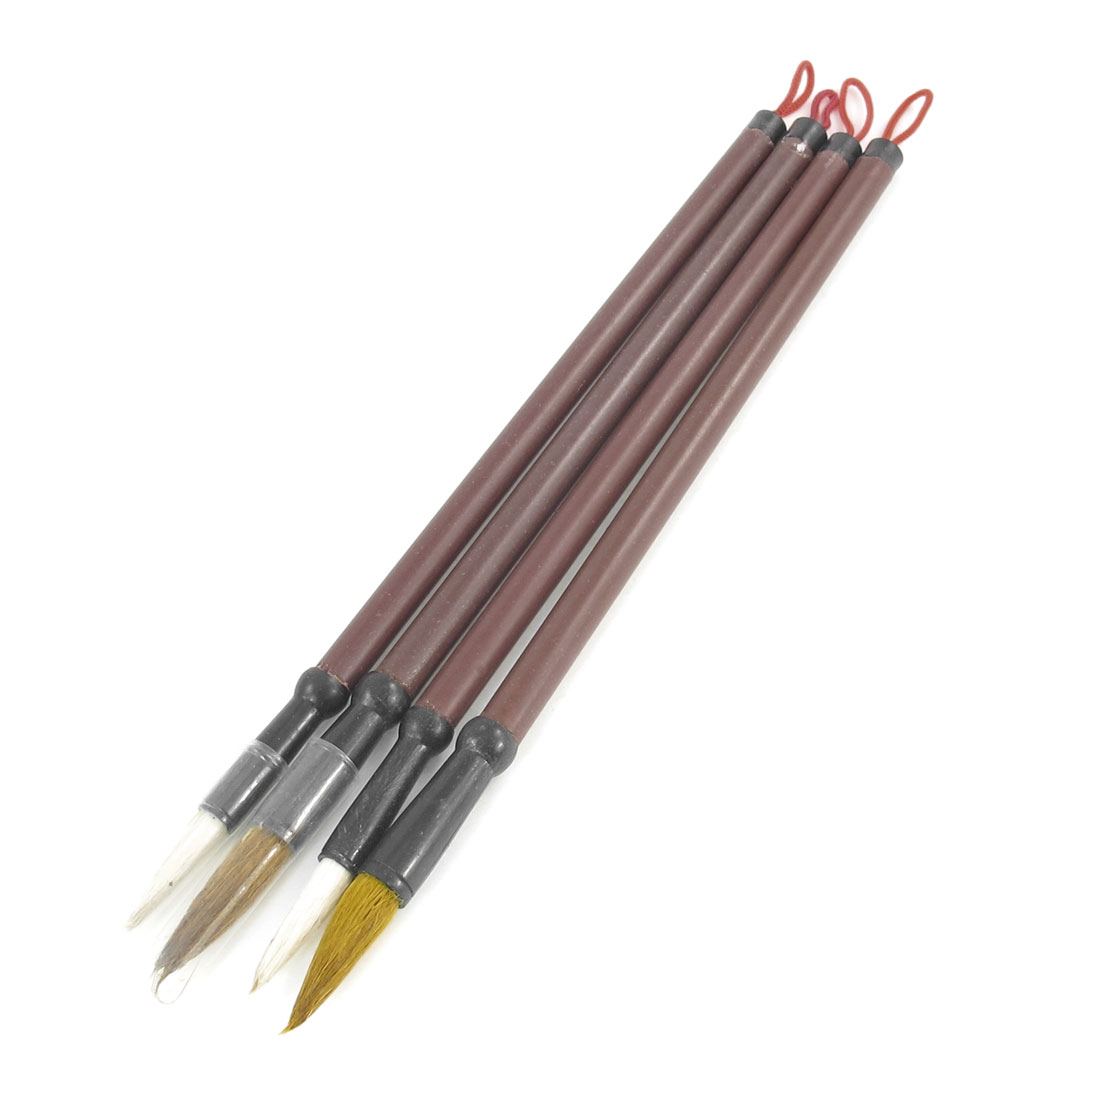 4 Pcs Bamboo Shaft Chinese Calligraphy Writing Brush Pen Brown Black